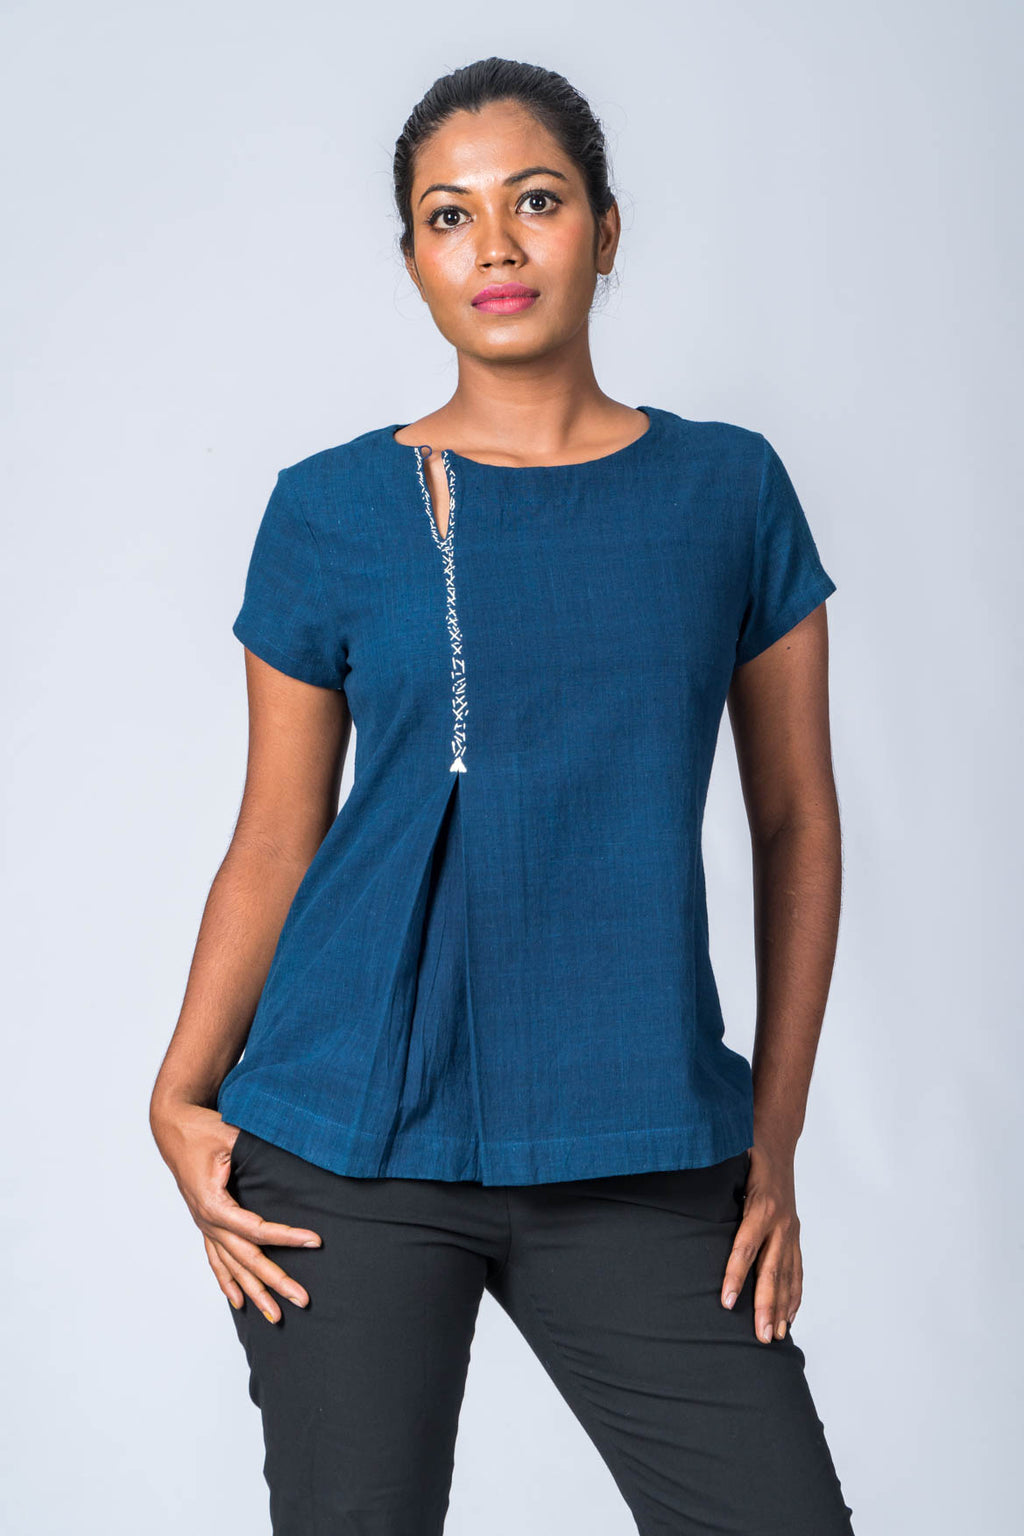 Natural Indigo Cotton Top - HOW - Upasana Design Studio